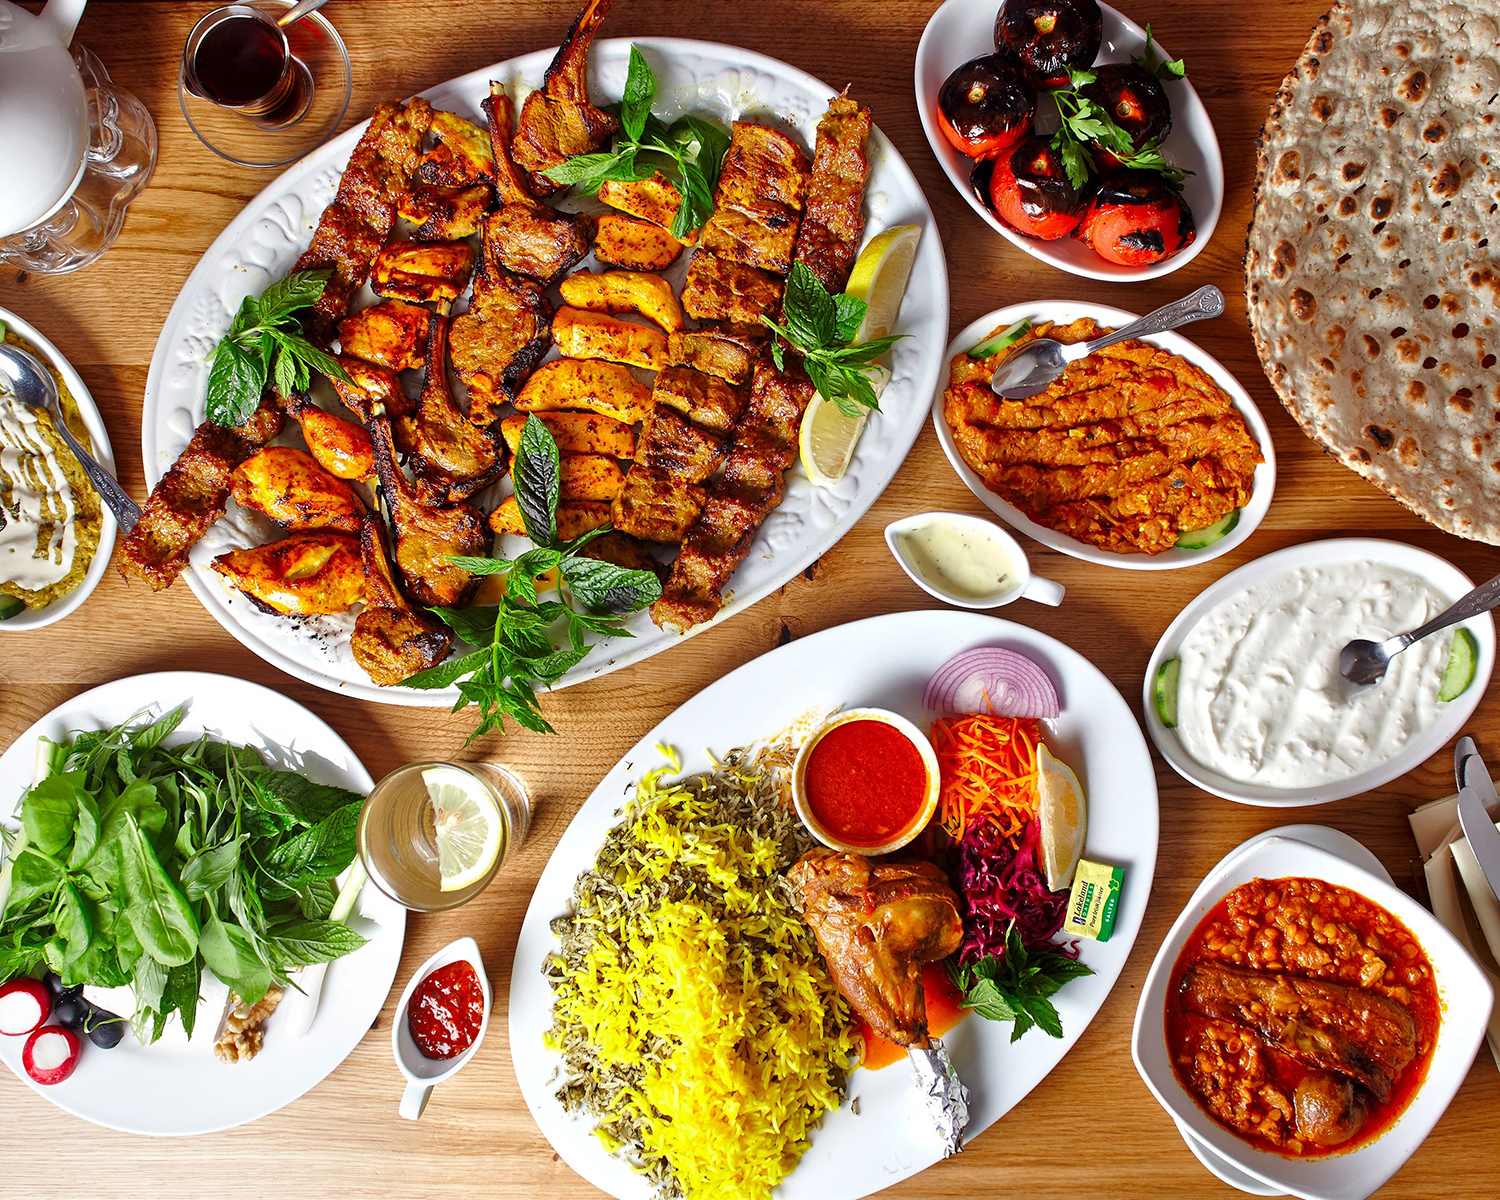 Iranian foods are delicious